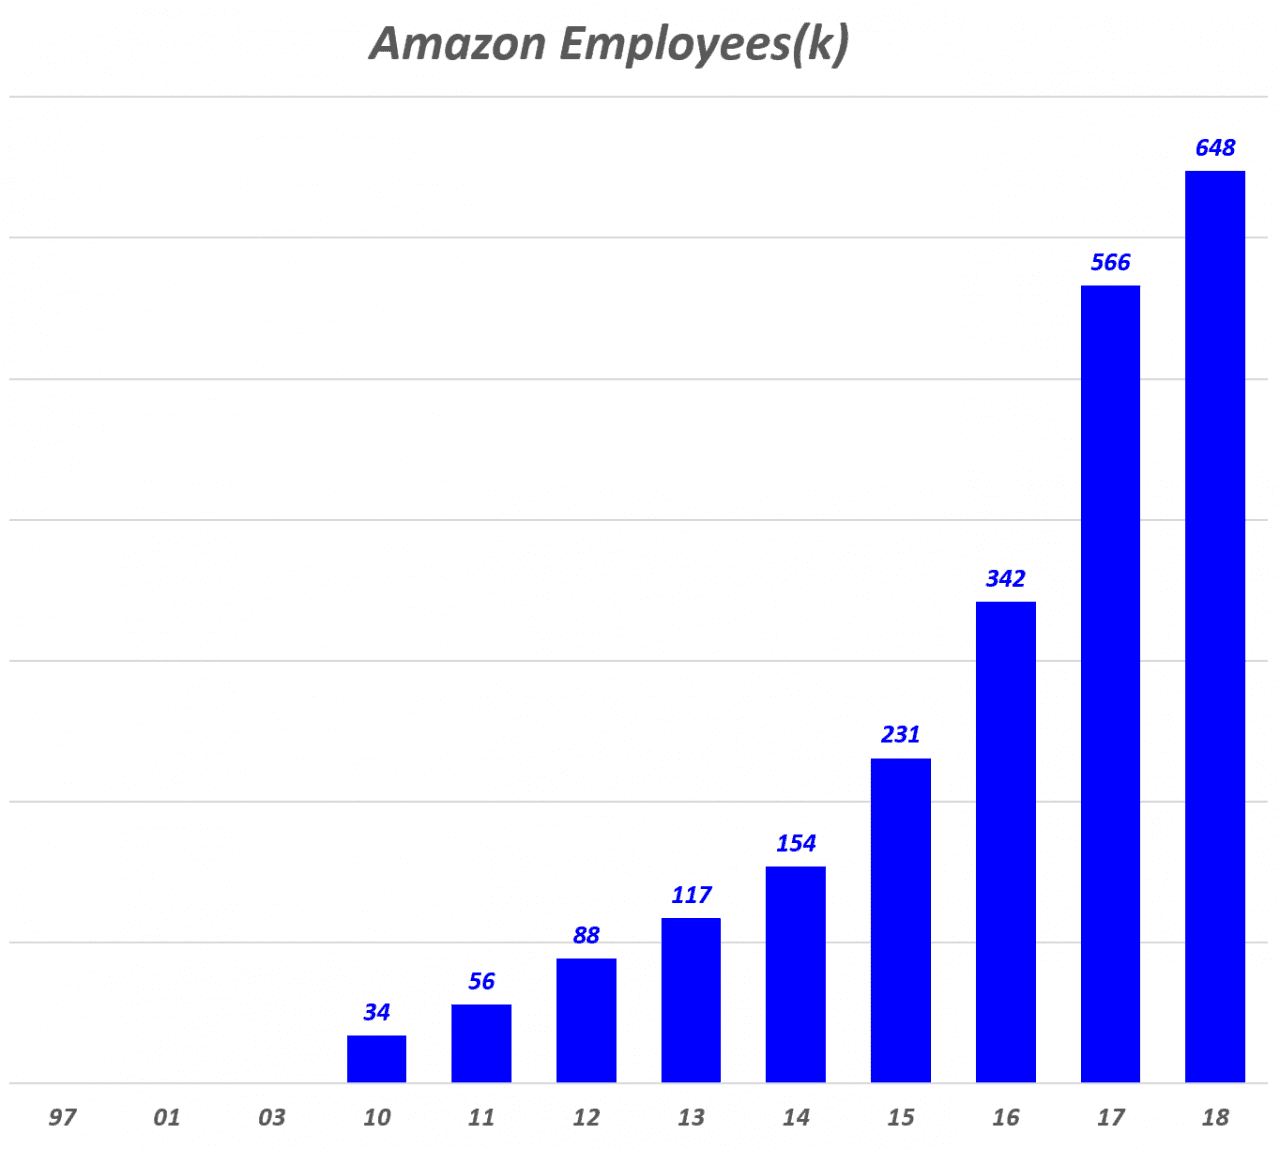 아마존 연도별 임직원 수 추이(1997년 ~ 2018년), Amzon Employees (full-time and part-time; excludes contractors & temporary personnel), Data - Amazon, Graph Happist